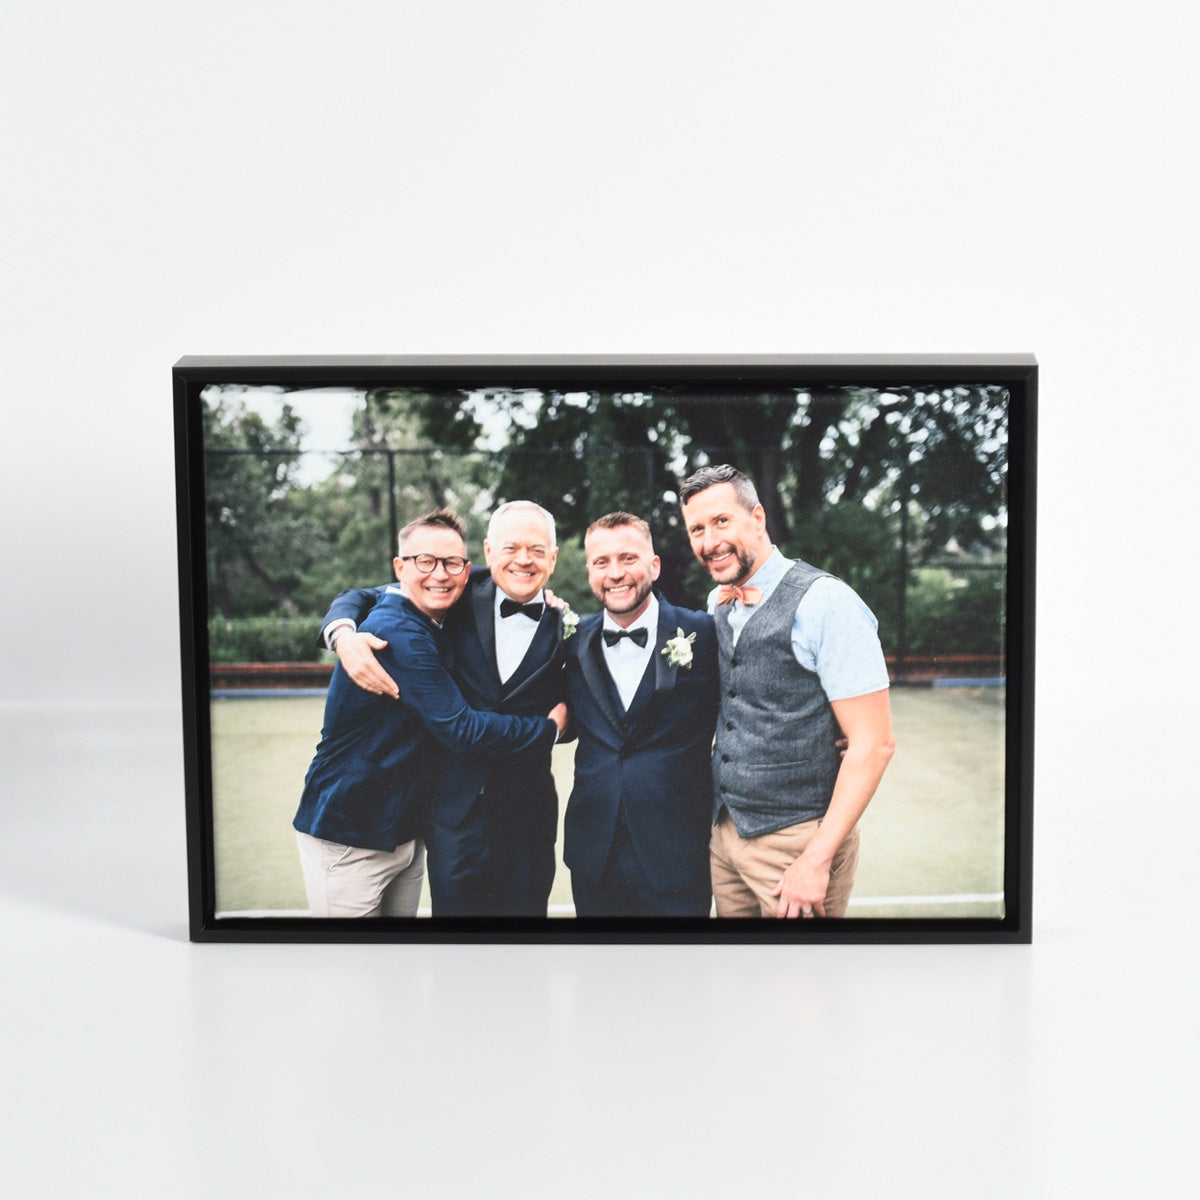 Wedding Photo Printed on Canvas with Custom Floater Frame